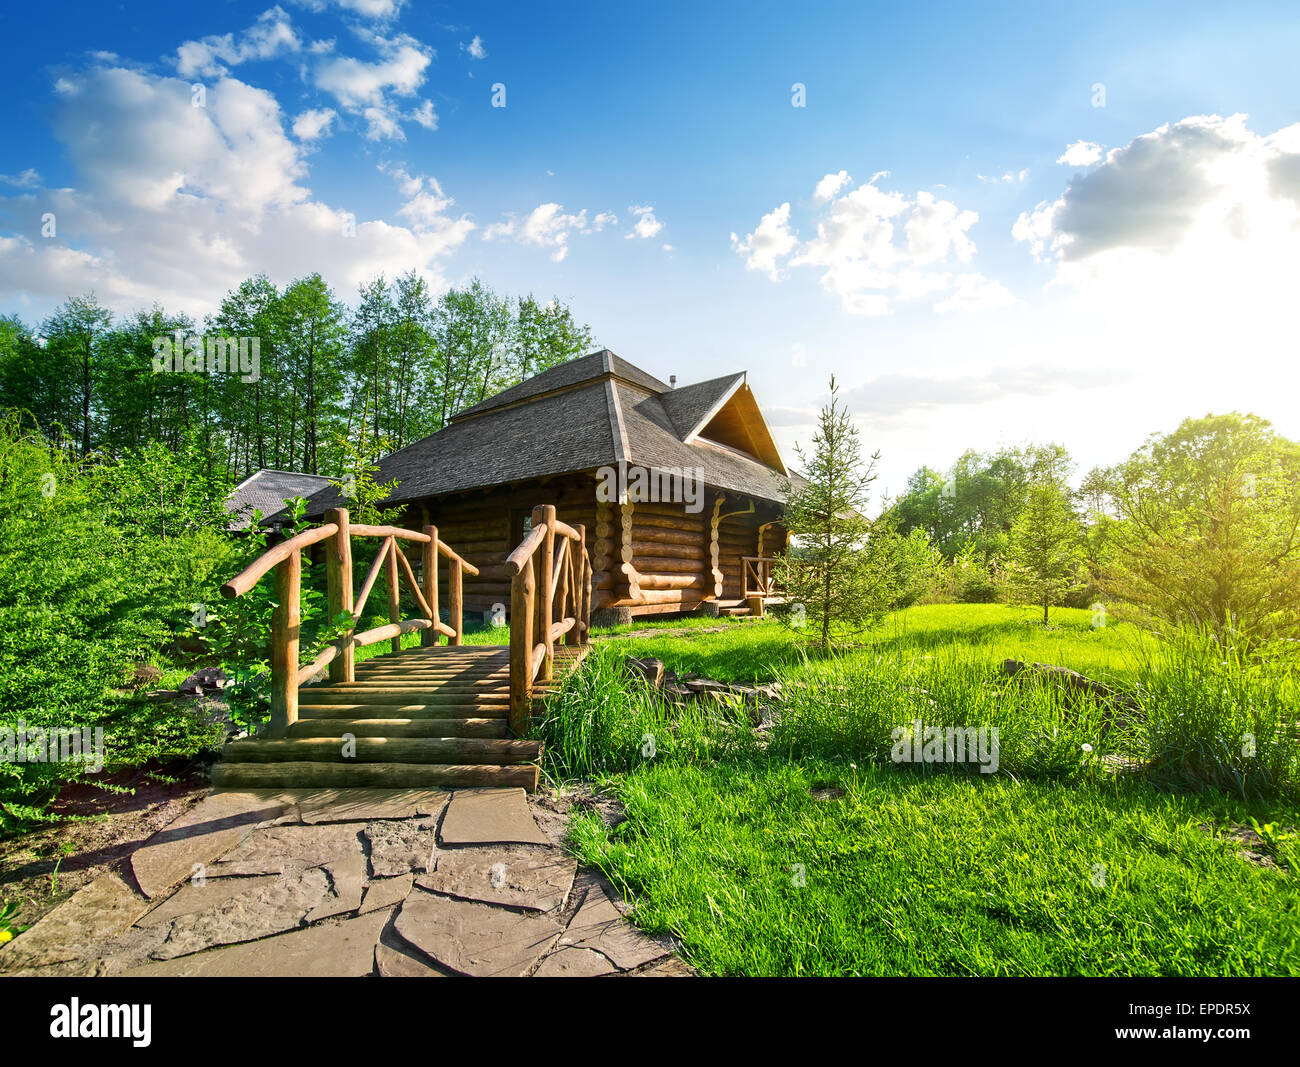 Wooden bridge and house of log in the forest Stock Photo